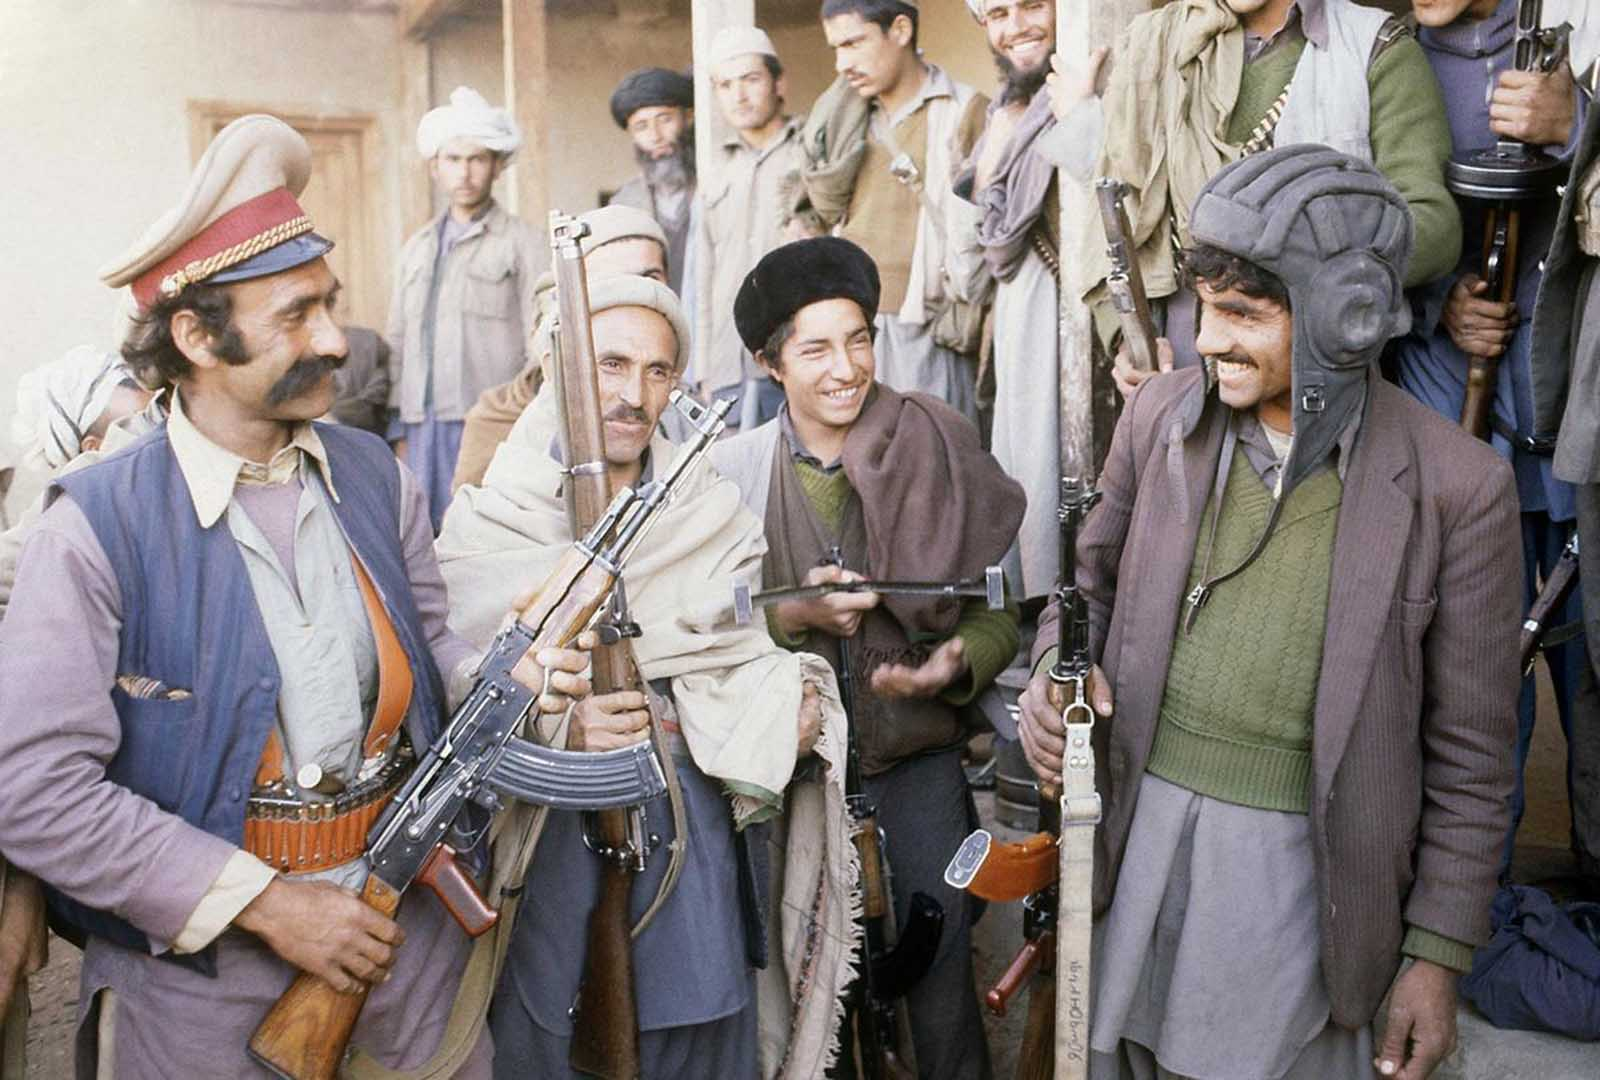 A troop of Muslim rebels equipped with old-fashioned rifles, east of Kabul, on February 21, 1980. At the time, anti-Communist rebels were attacking traffic at will on the main supply route from Pakistan to Afghanistan's capital.